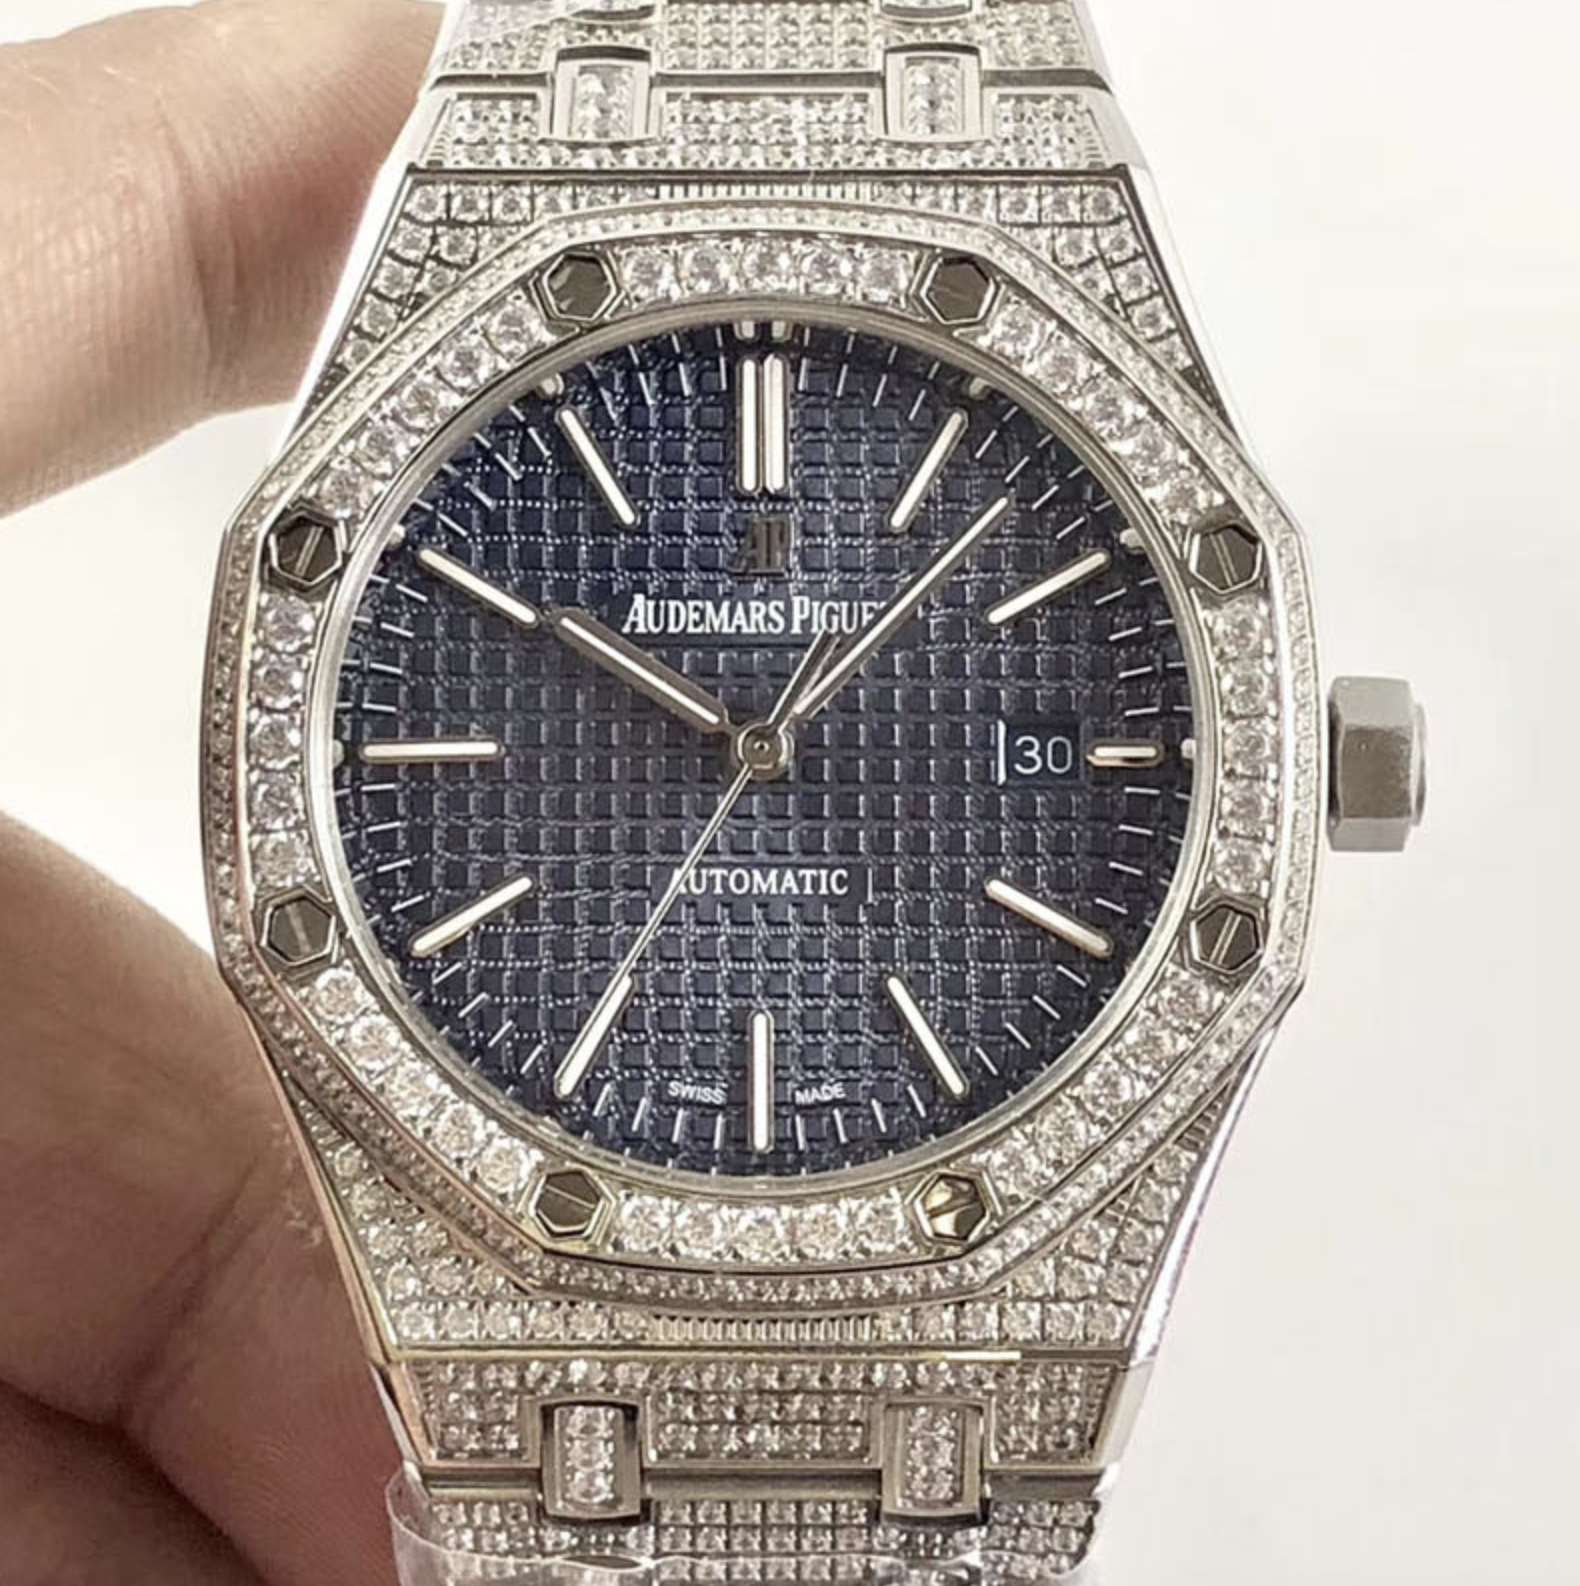 Audemars piguet replica royal oak 15400ST 41mm white gold full paved diamonds blue dial